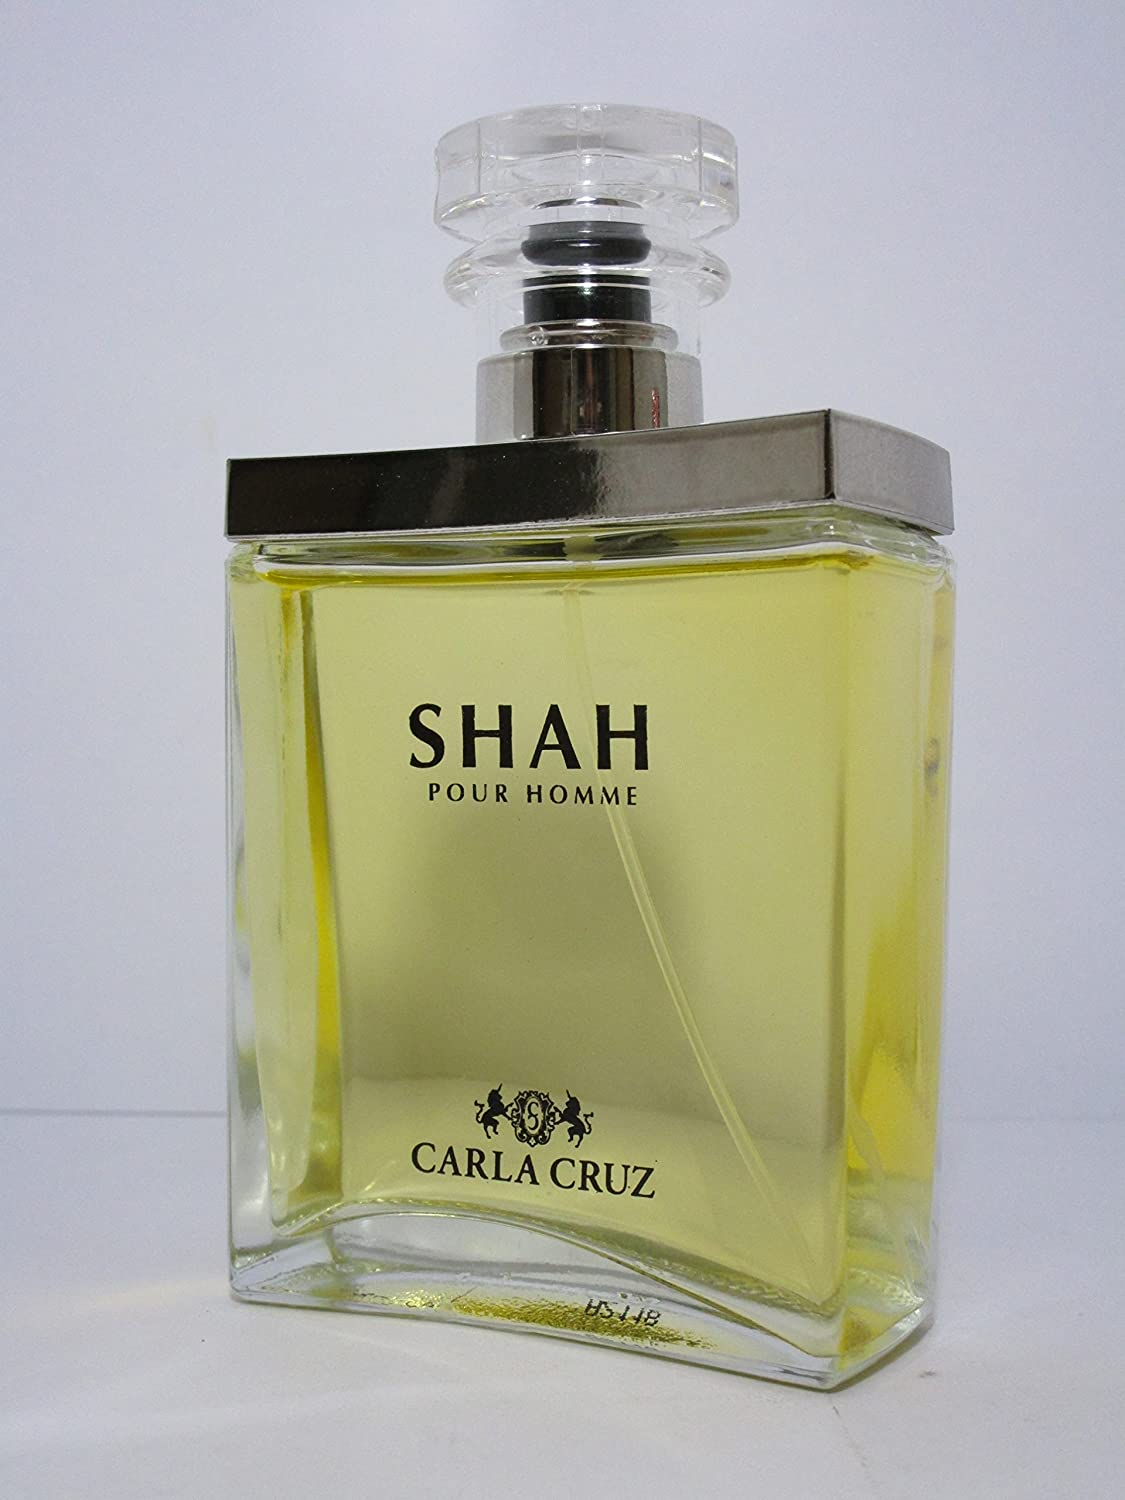 Amazon.com : CARLA CRUZ SHAH Eau De Toilette Spray FOR MEN 3.4 Oz / 100 ml BRAND NEW ITEM IN BOX SEALED : Beauty